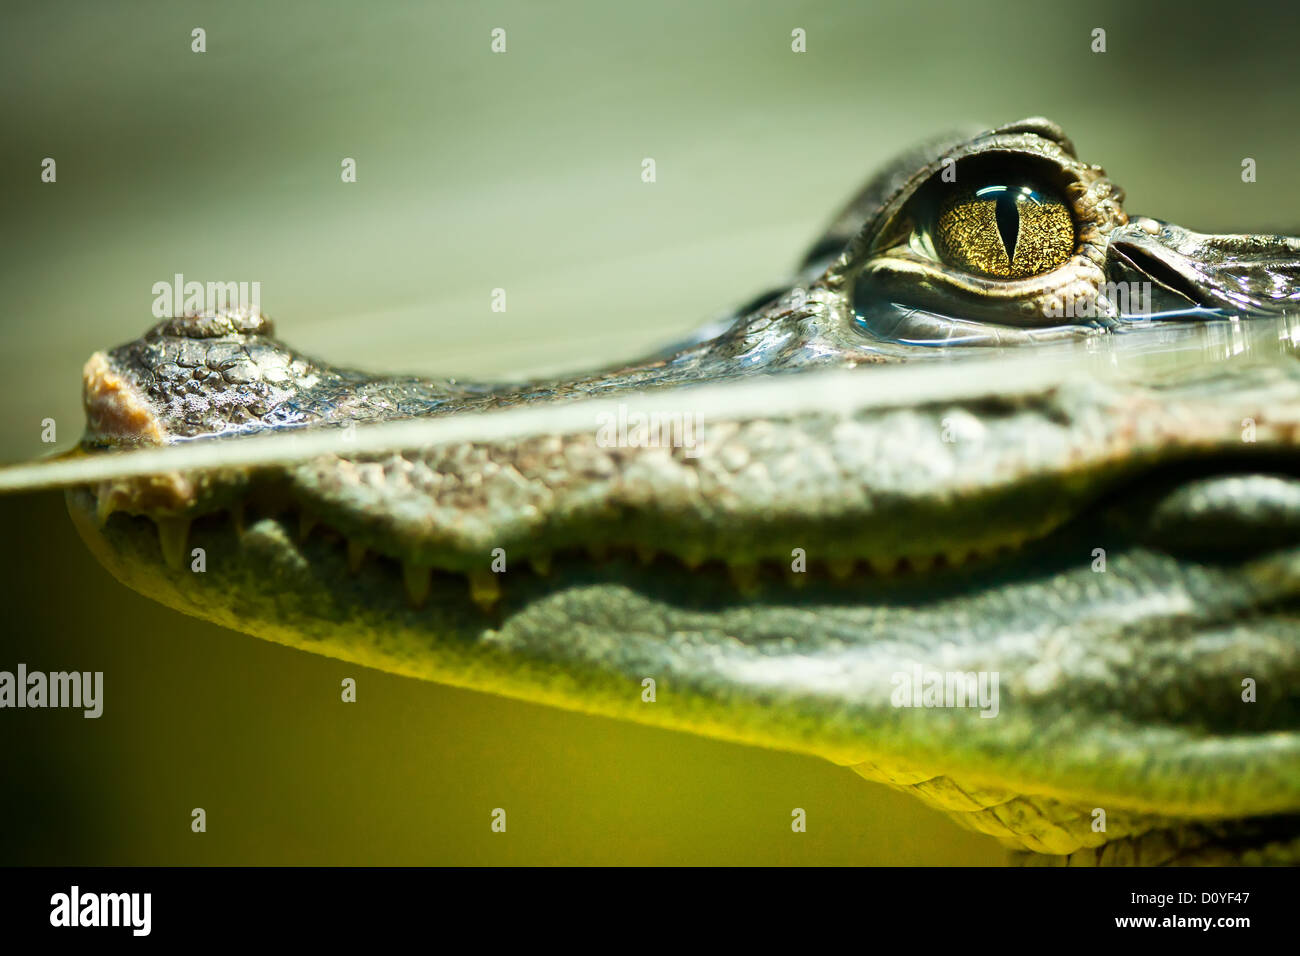 Caiman crocodilus Stockfoto